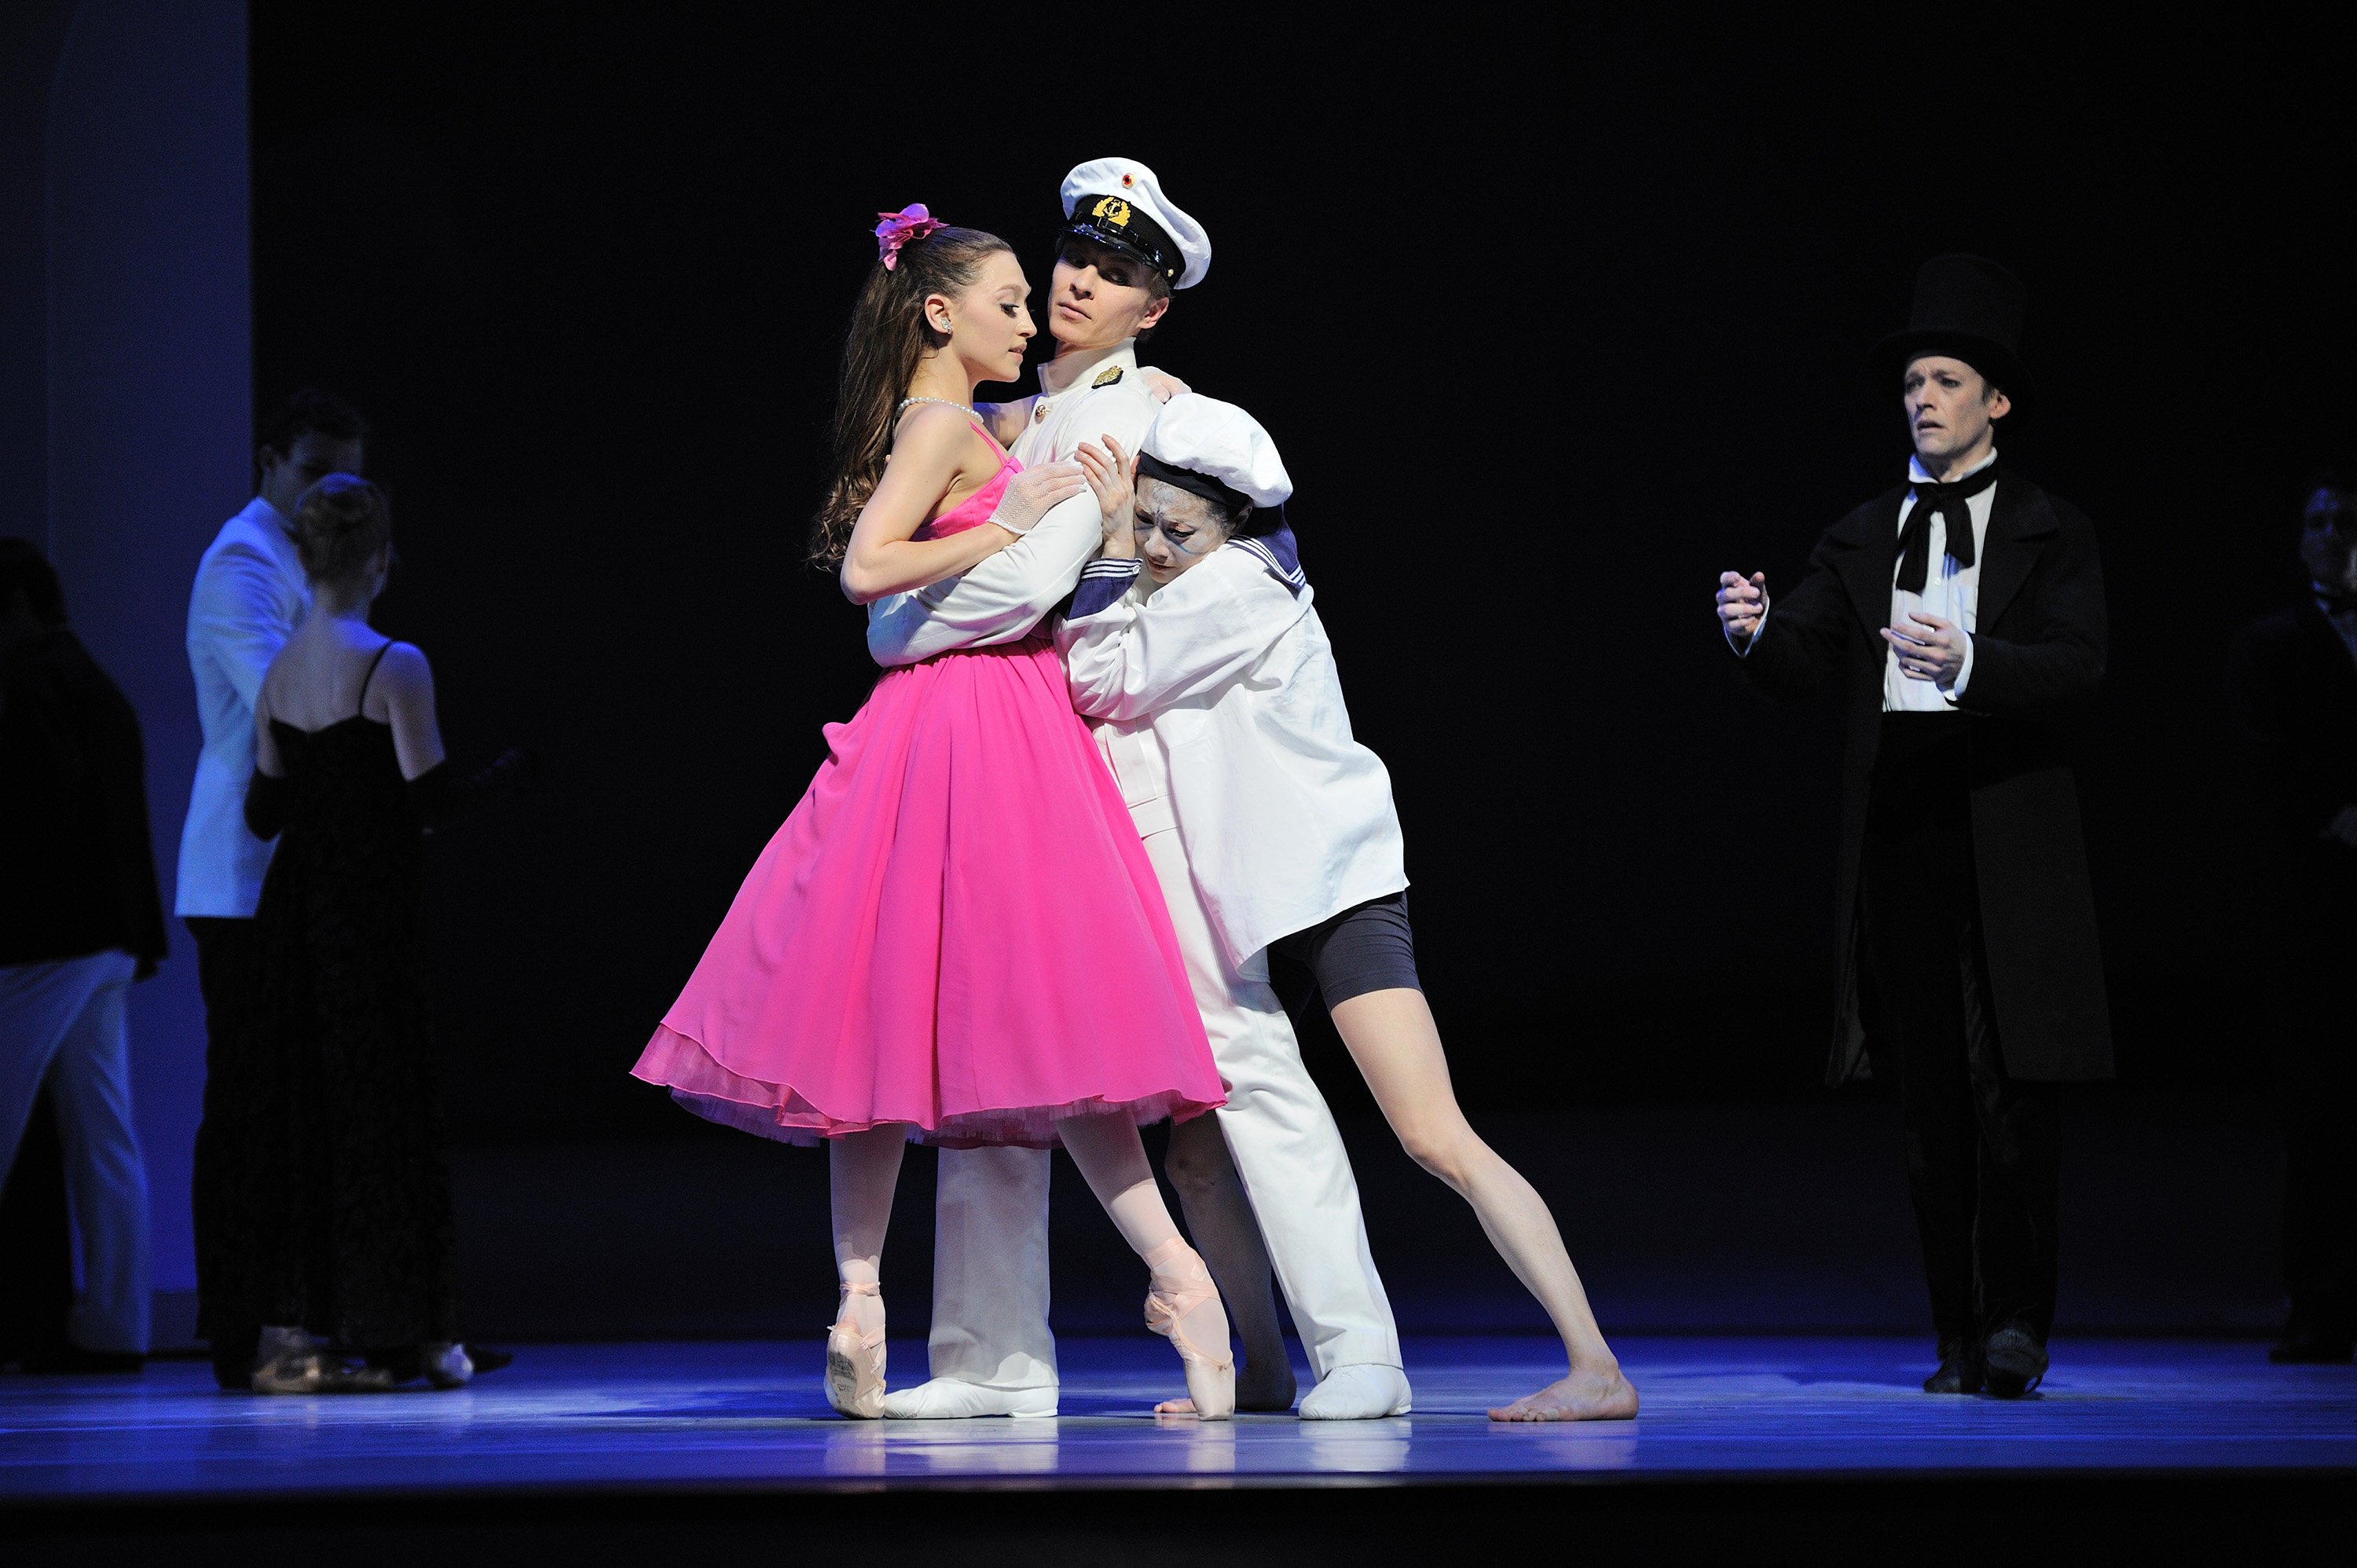 Sarah Van Patten and Tiit Helimets in Neumeier's The Little Mermaid Erik Tomasson